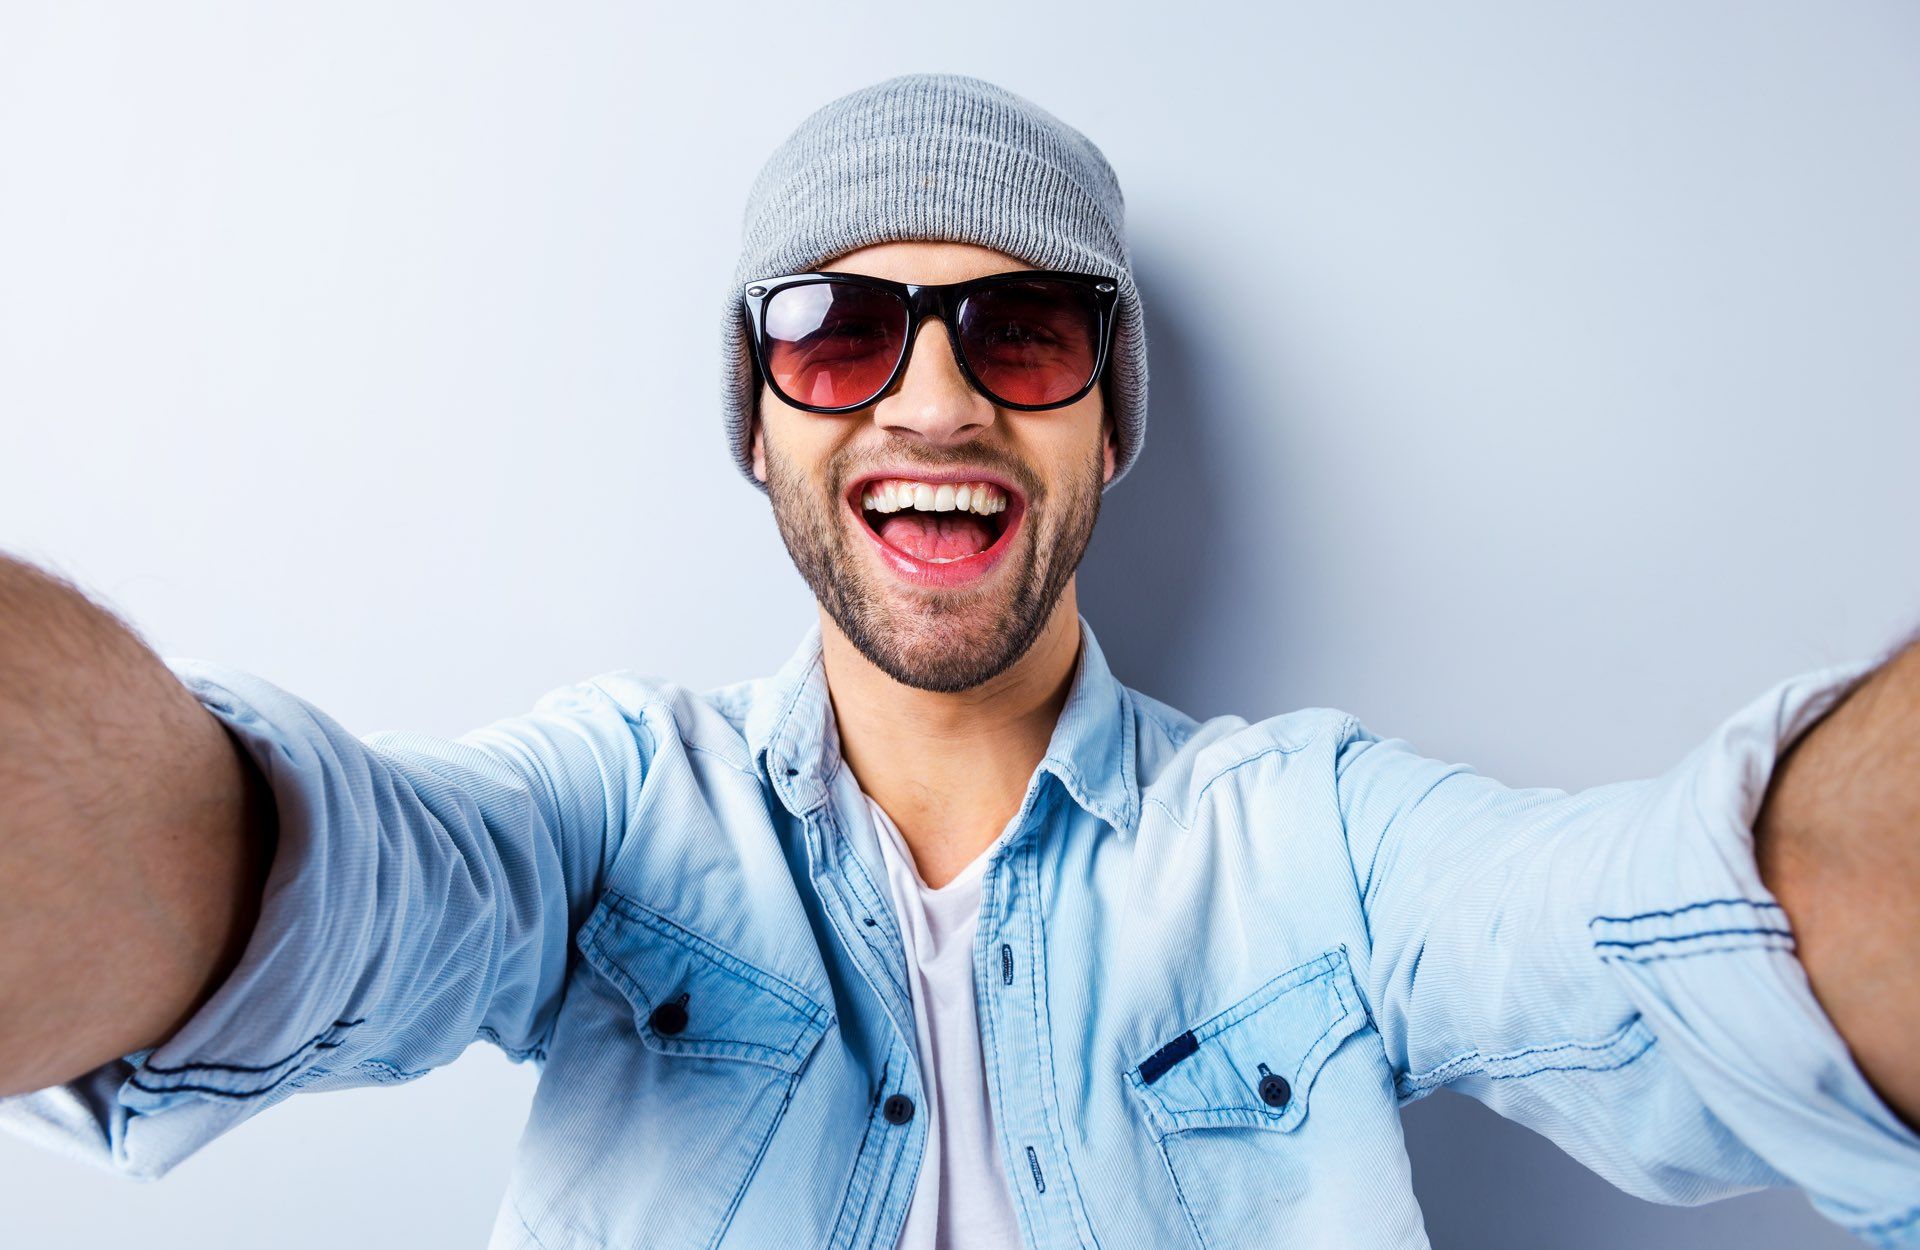 Man Selfie Wallpapers High Quality   Download Free